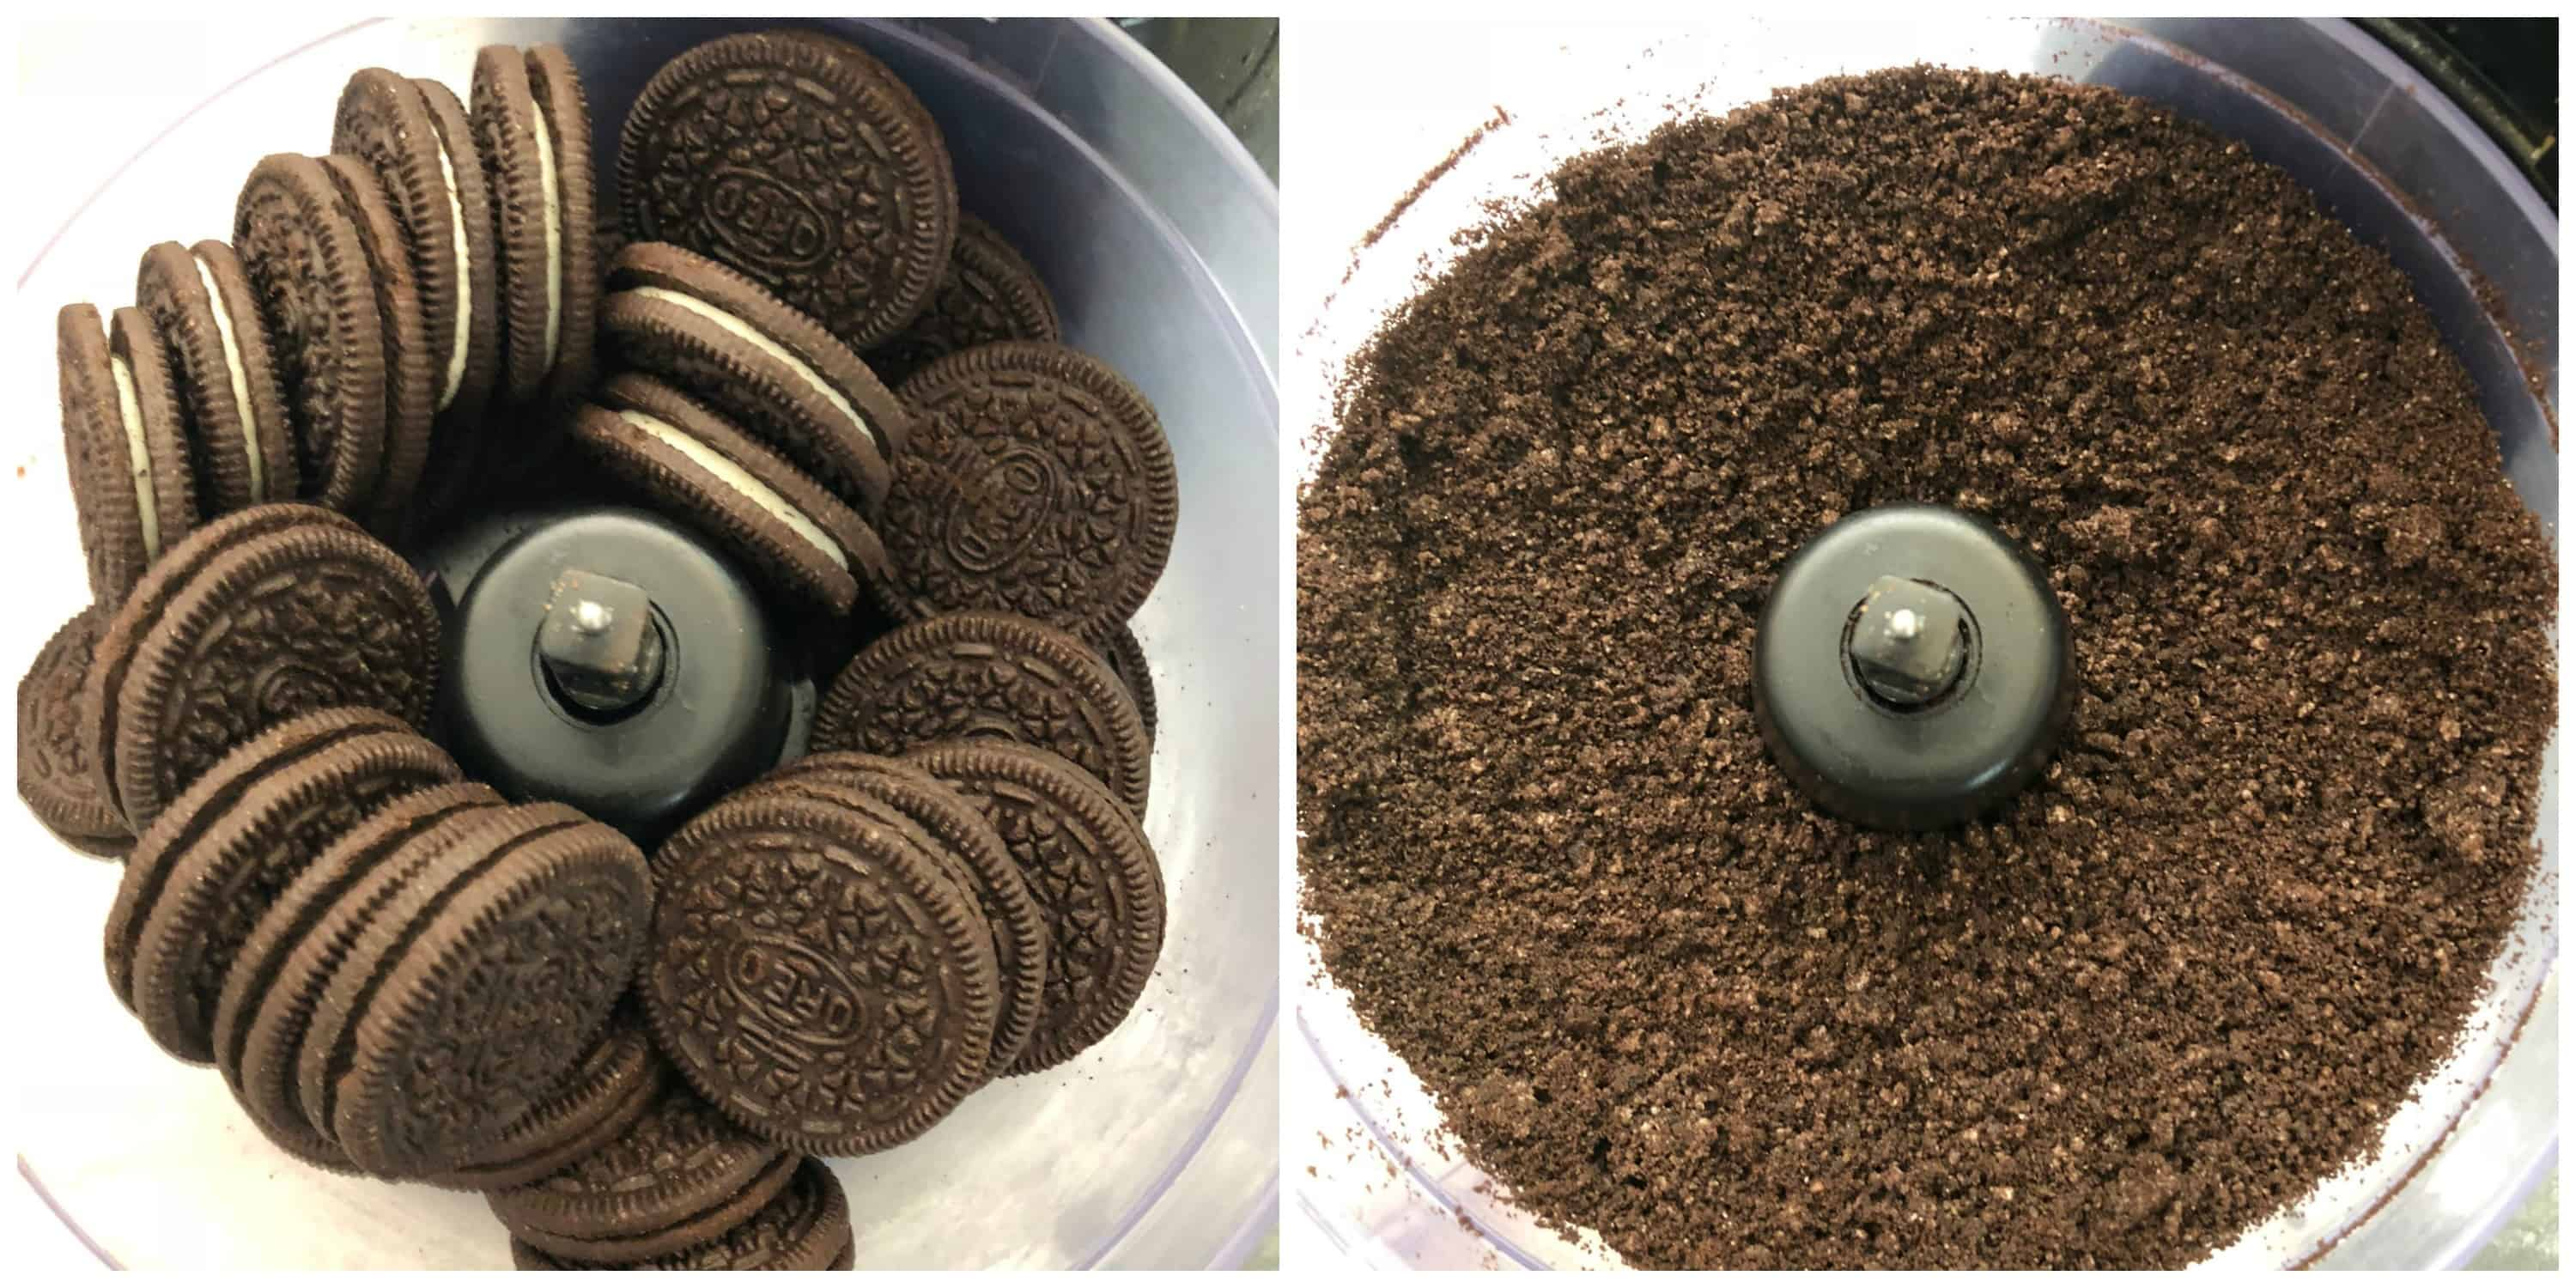 Ore cookies in a food processor